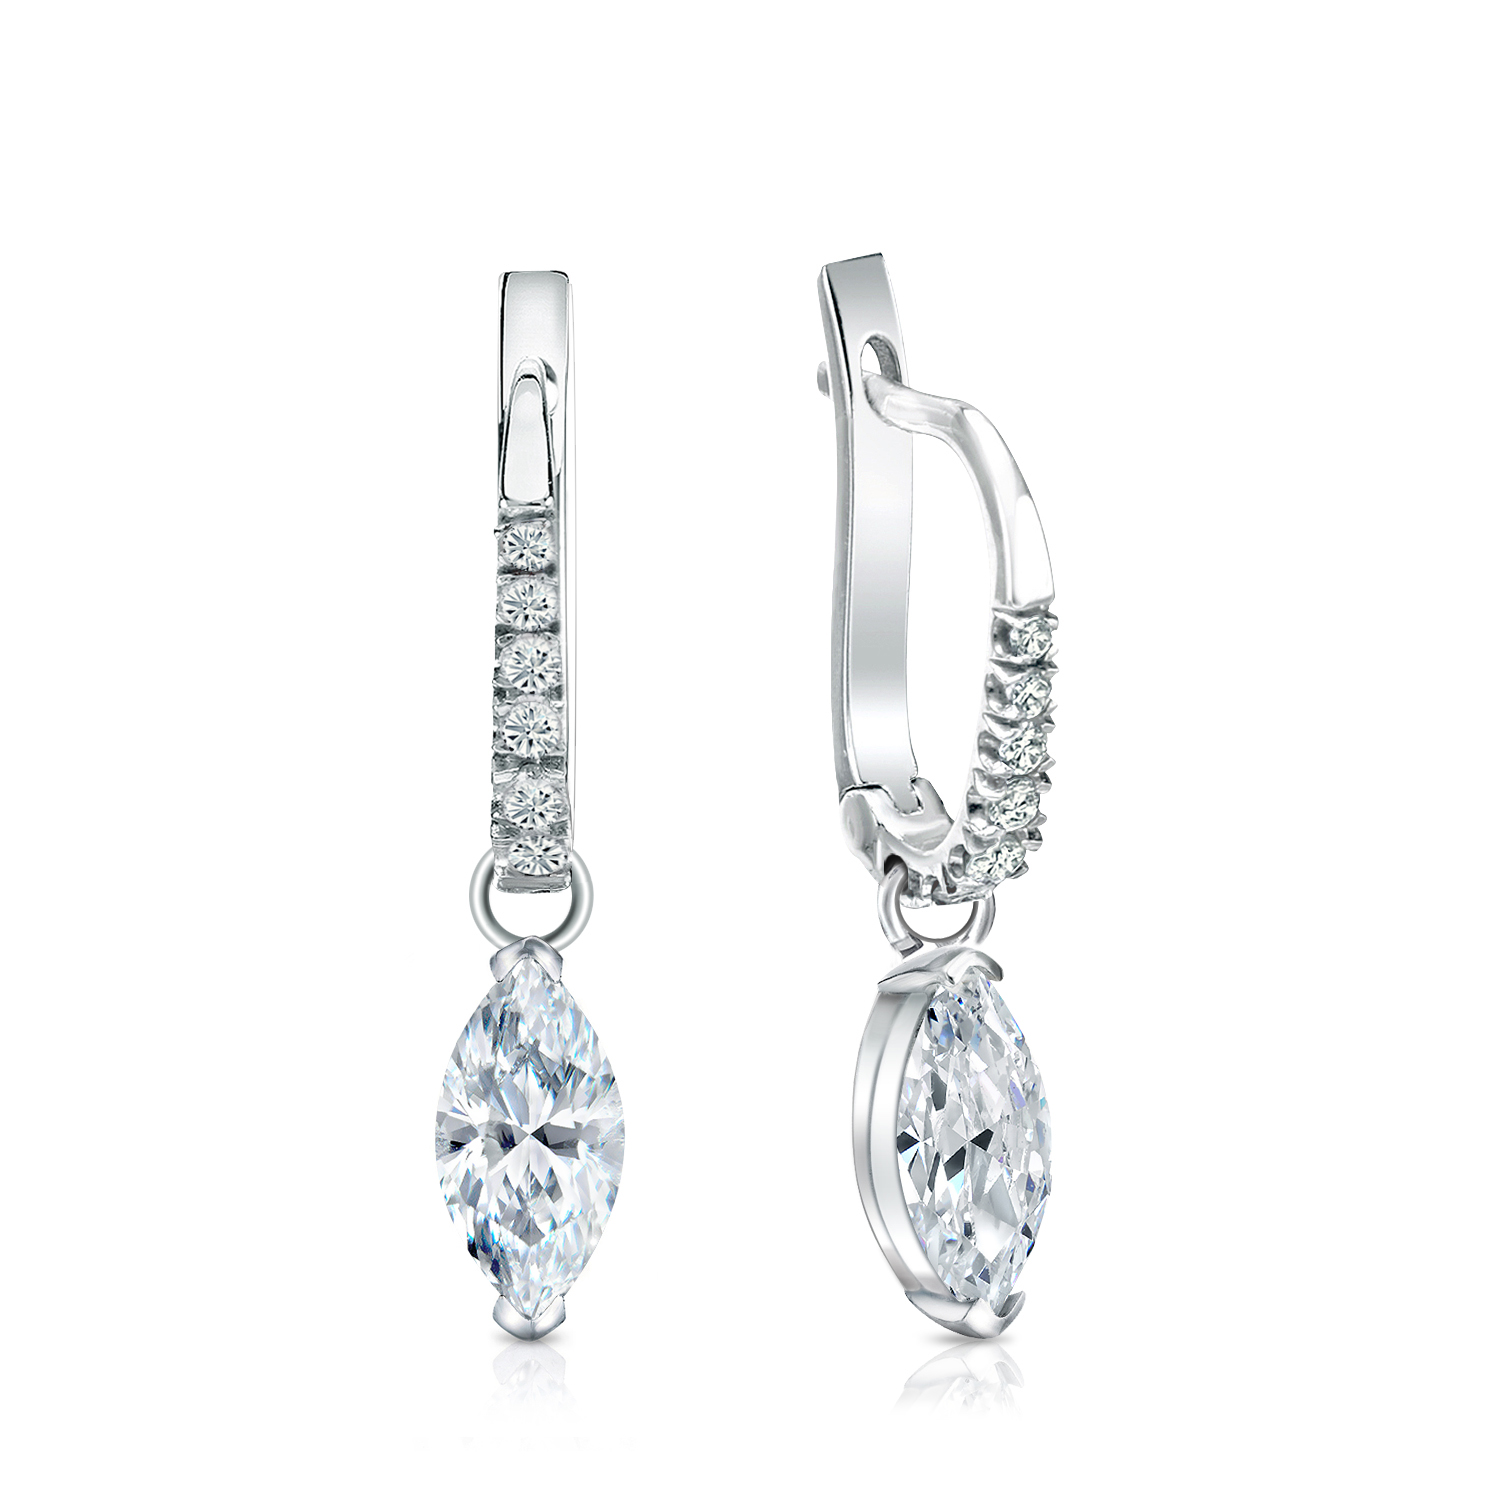 Certified 14k White Gold V-End Prong Marquise Diamond Drop Earrings 2.00 ct. tw. (G-H, VS)